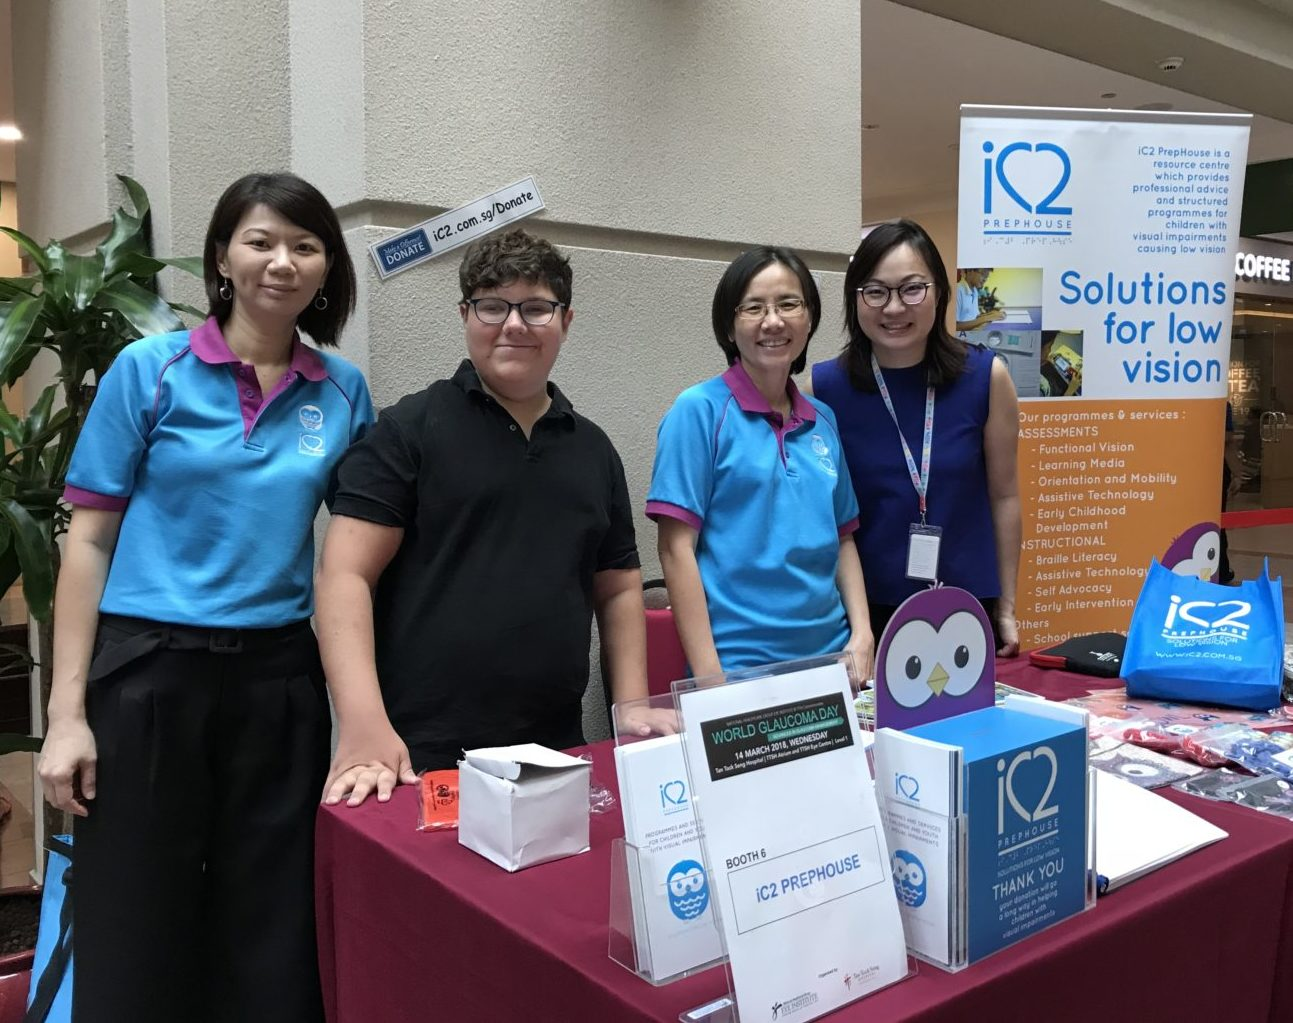 Dr Audrey Pang, a Consultant Ophthalmologist with the National Healthcare Group Eye Institute at Tan Tock Seng Hospital visiting iC2 booth to better understand the services provided